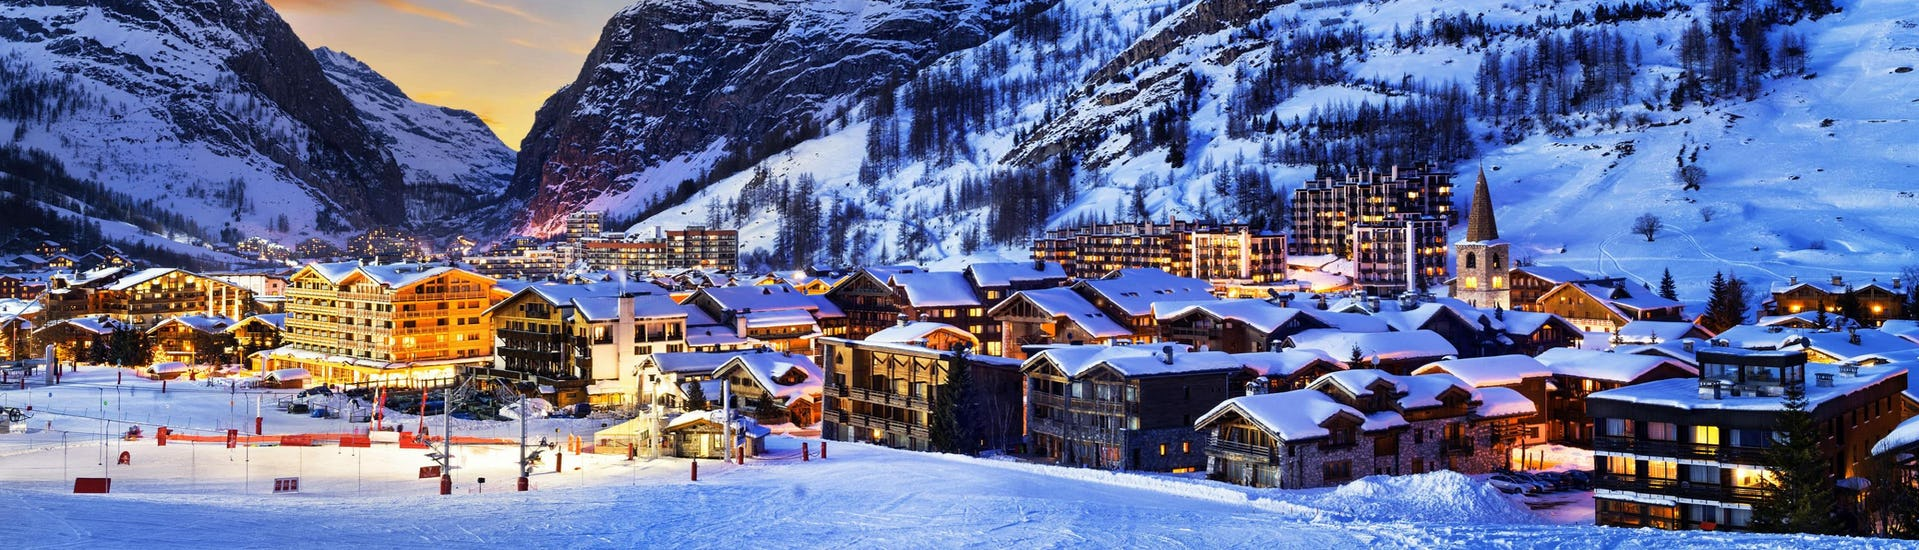 A view of the wonderful French ski resort Val d'Isère surrounded by snow at sunset.